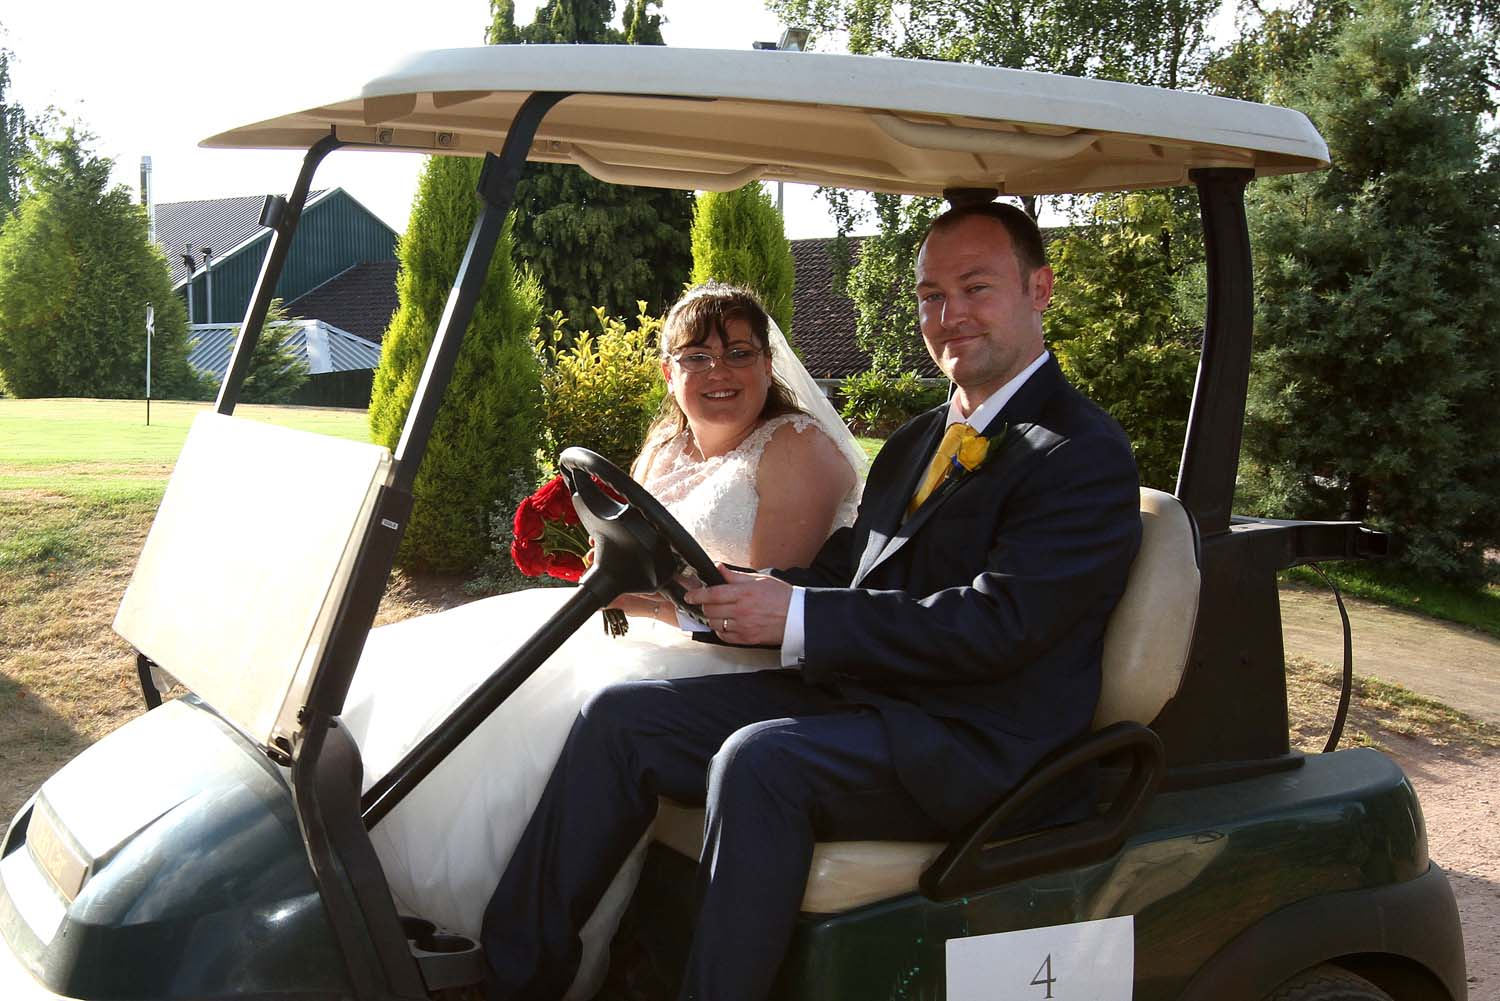 Bride and Groom taking a ride in a golf buggy.